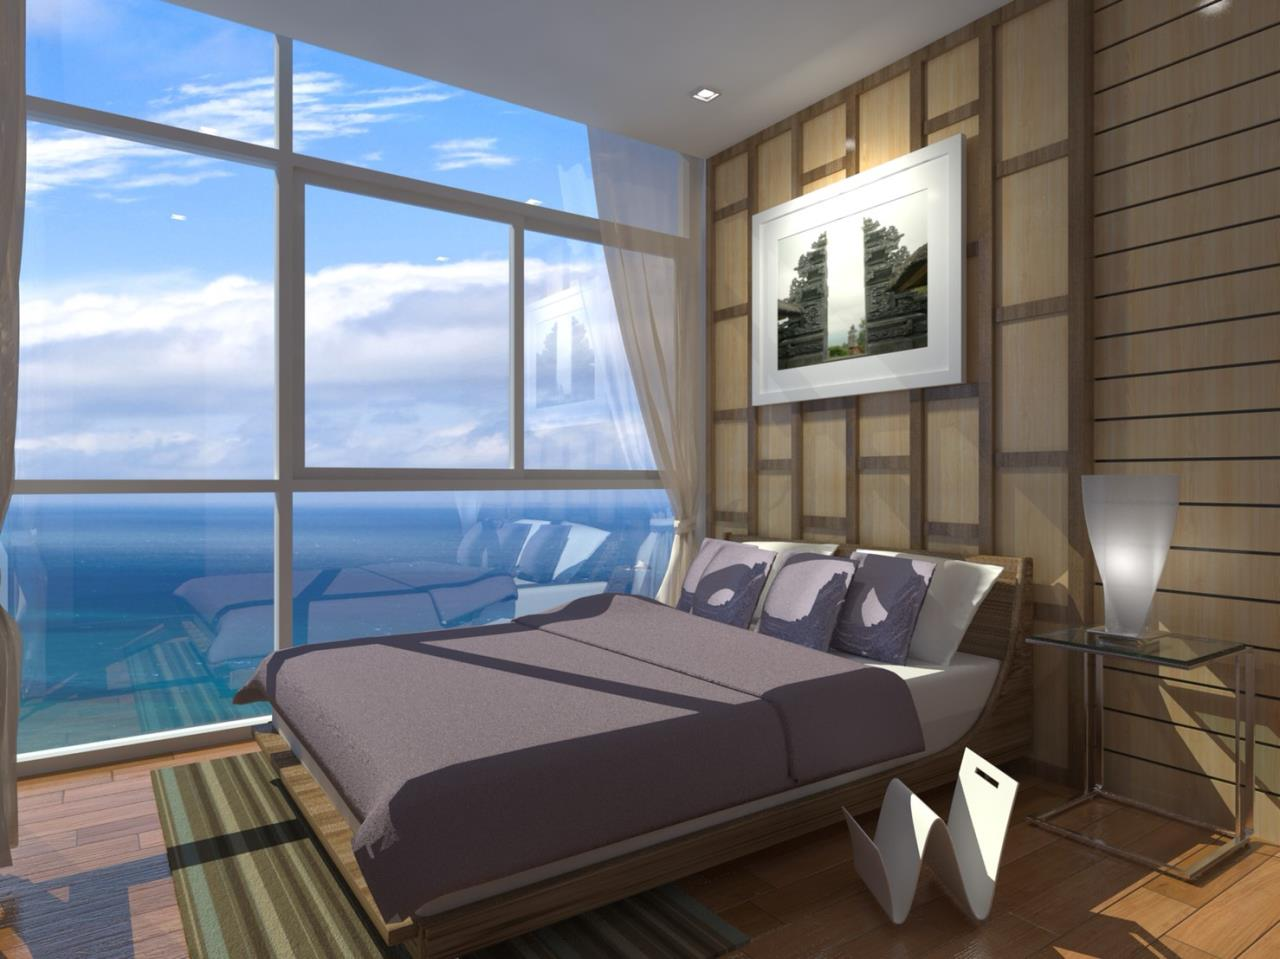 Signature Realty ( Thailand ) Co Ltd Agency's Furnished 1bedroom 46 sq.m condo with jacuzzi floor 2-10 at The Grand Jomtein Beach Pattaya 23